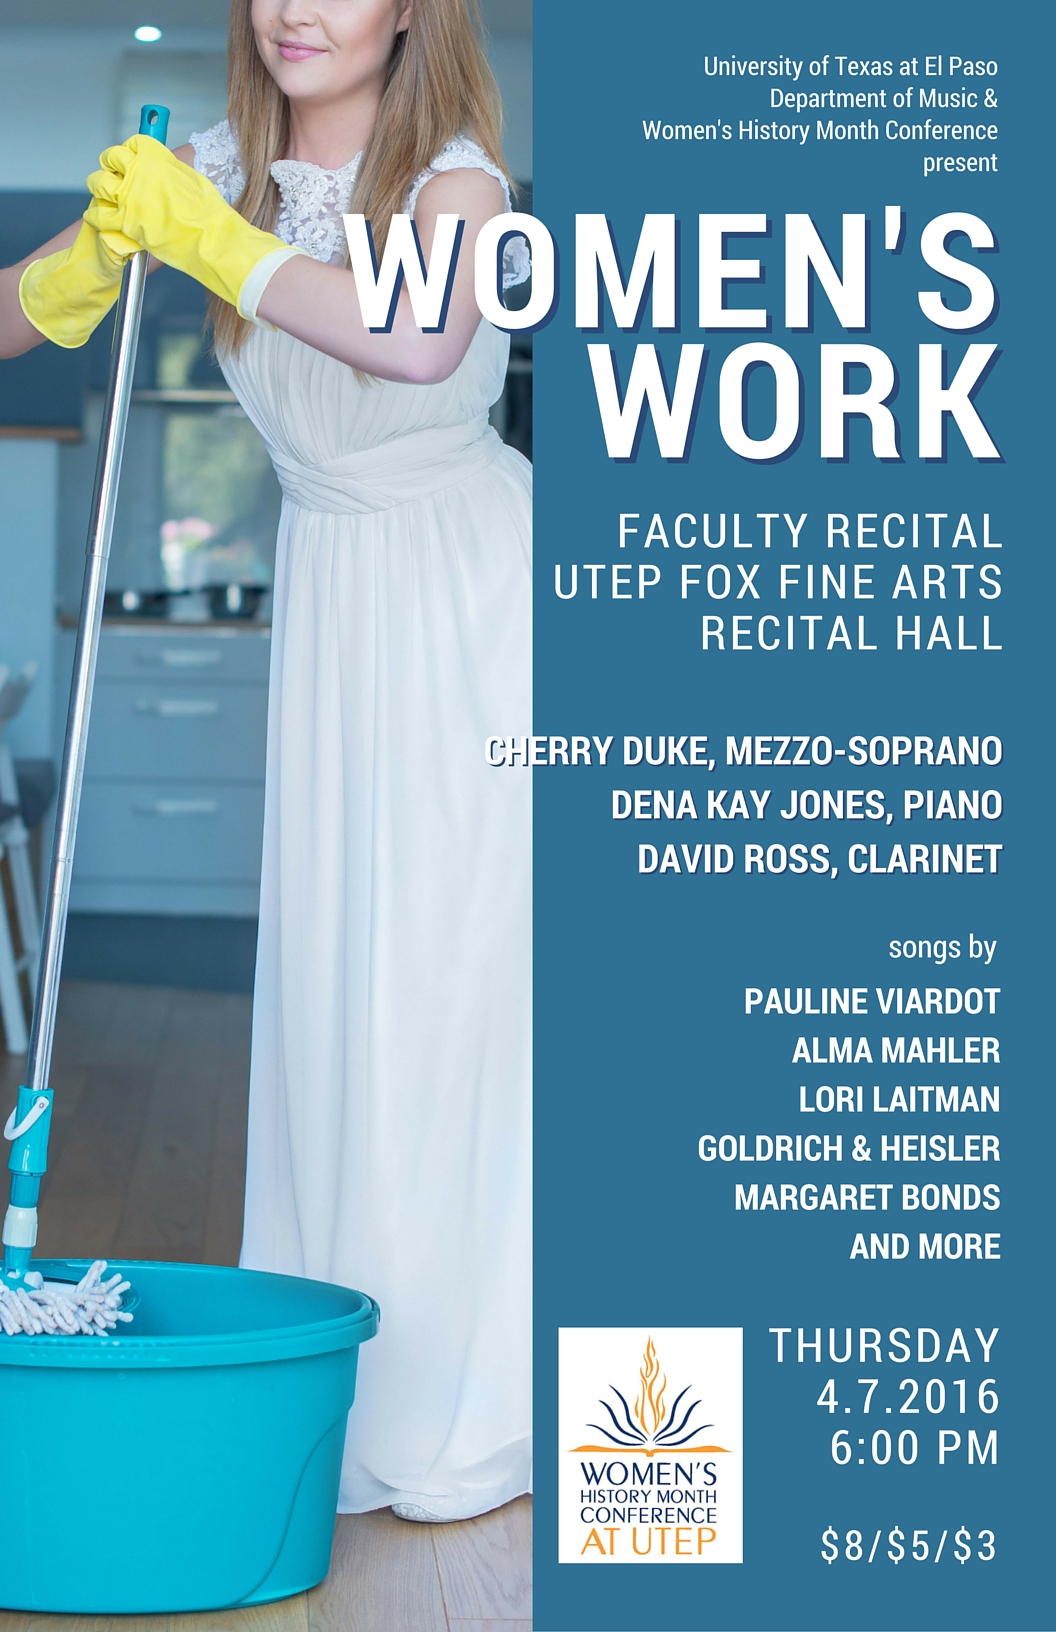 Women's Work: Faculty Recital at UTEP